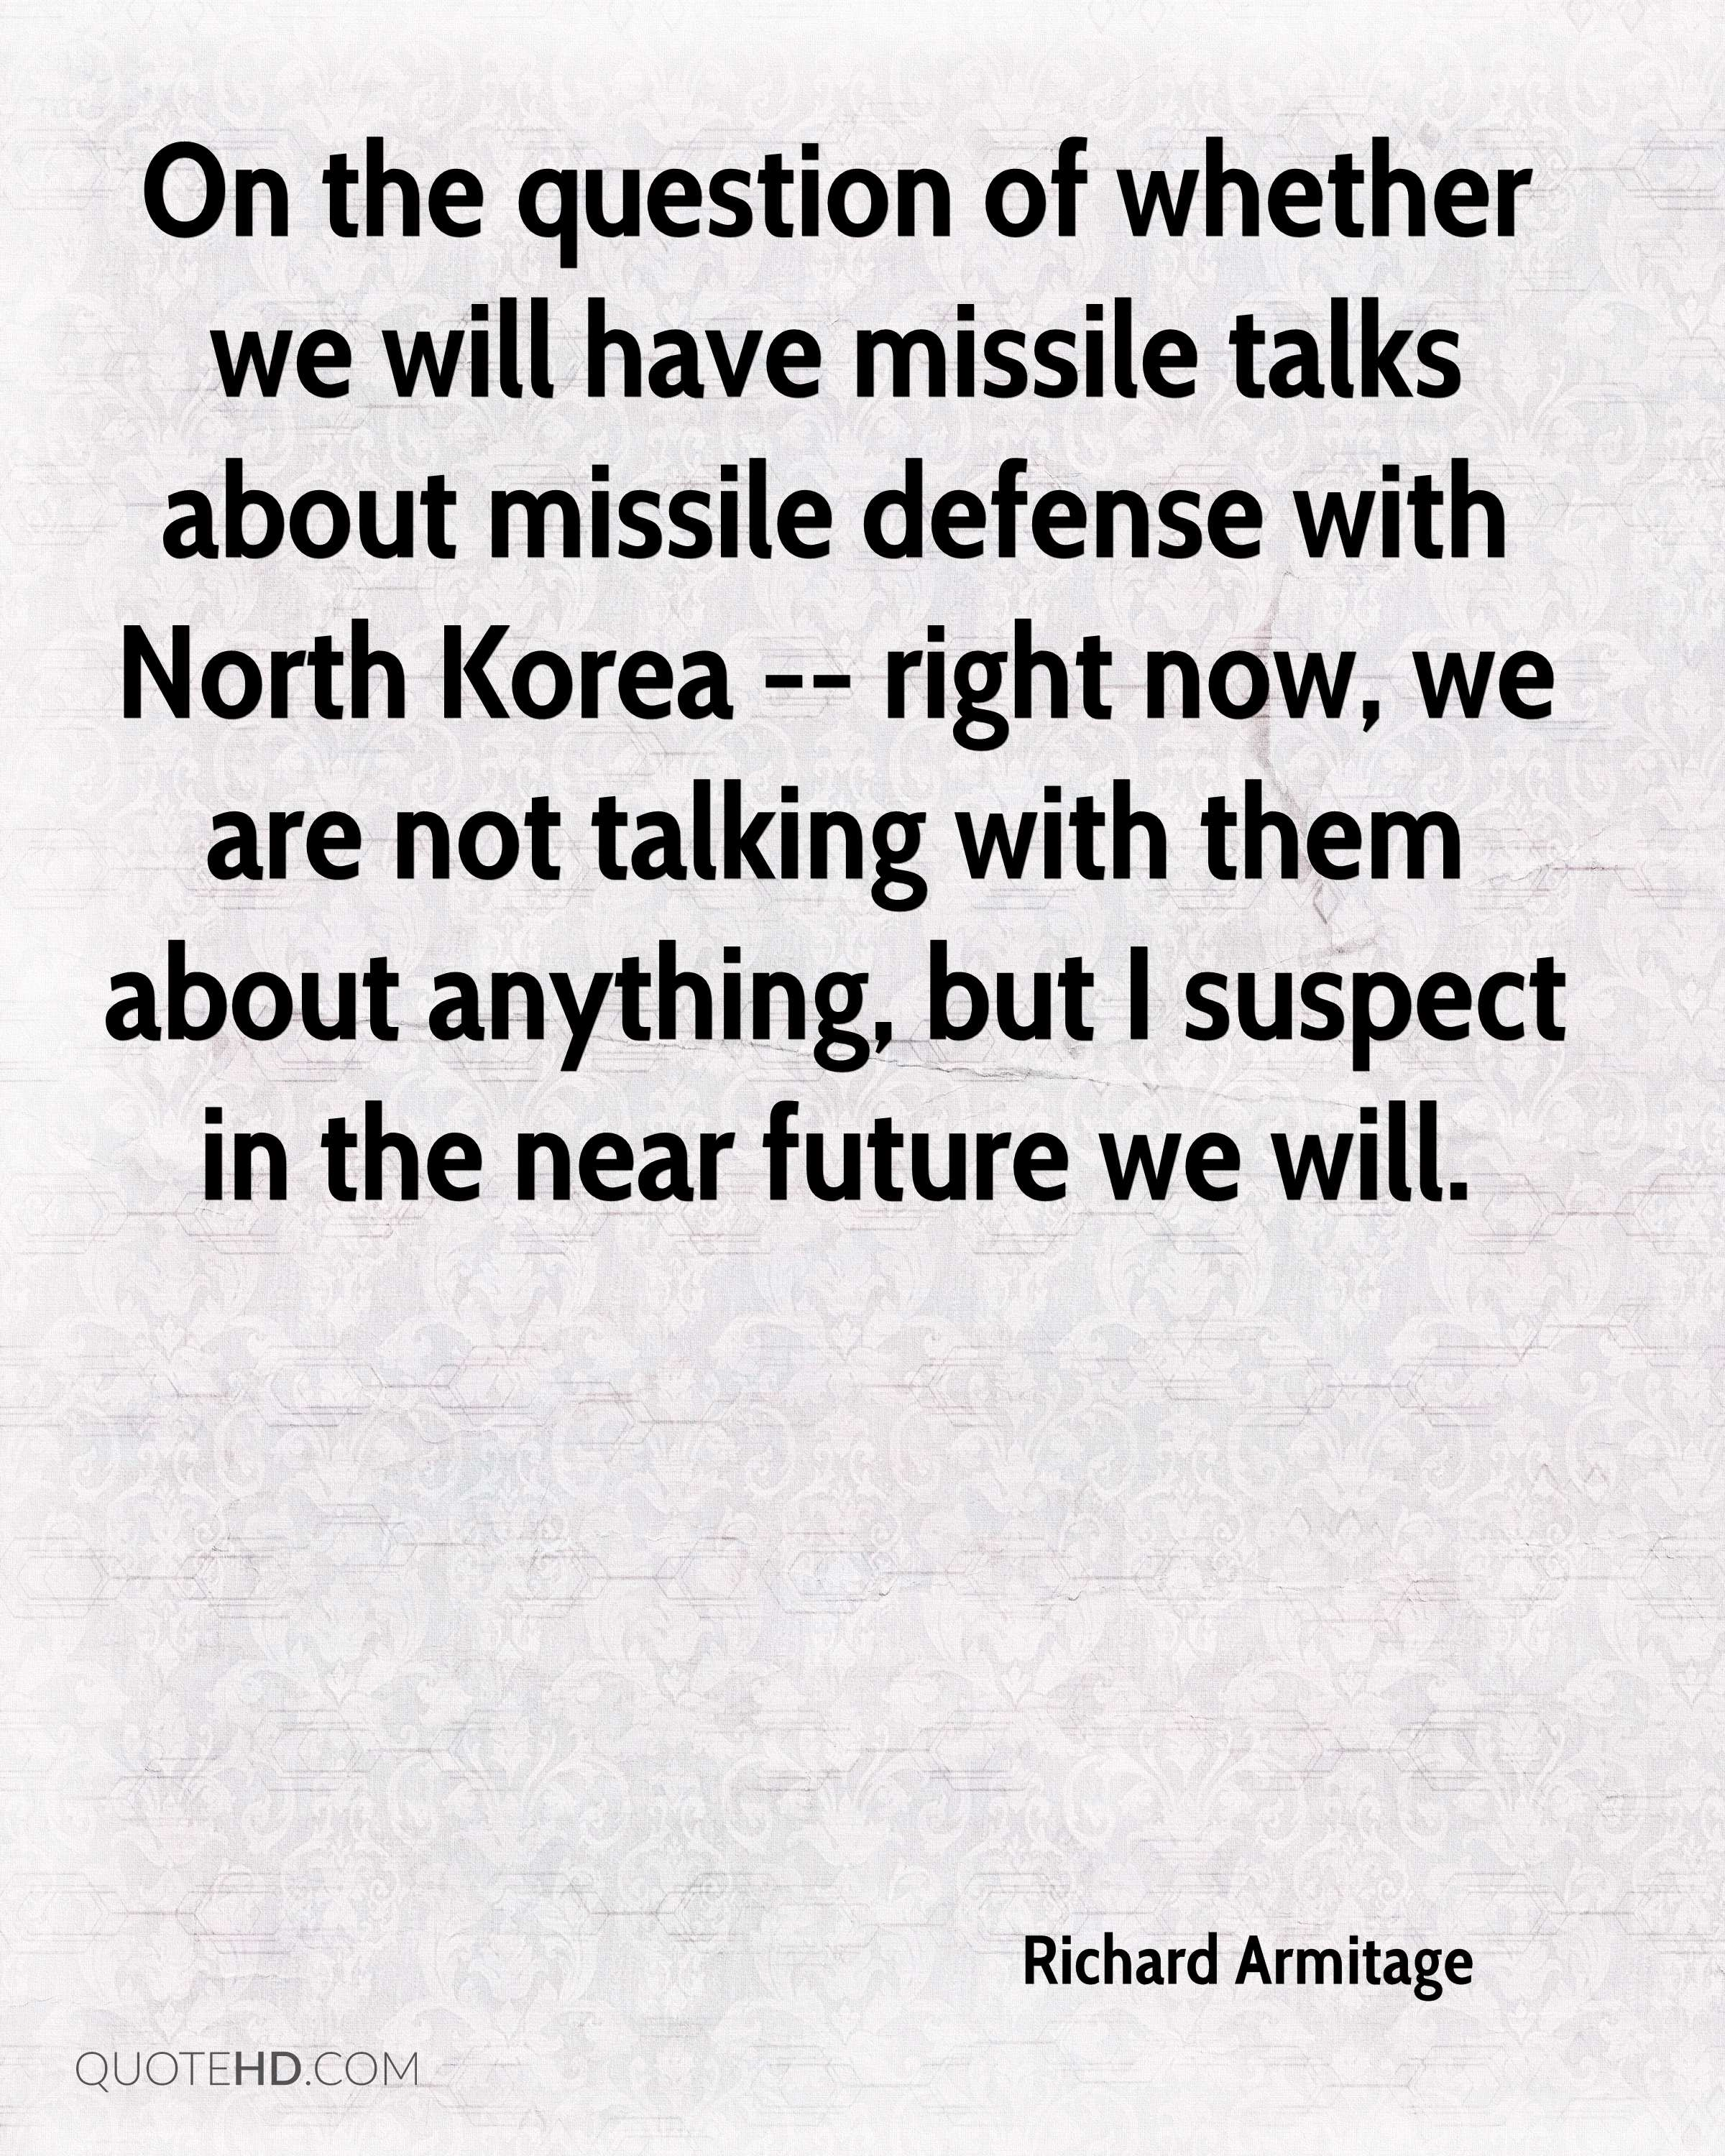 On the question of whether we will have missile talks about missile defense with North Korea -- right now, we are not talking with them about anything, but I suspect in the near future we will.